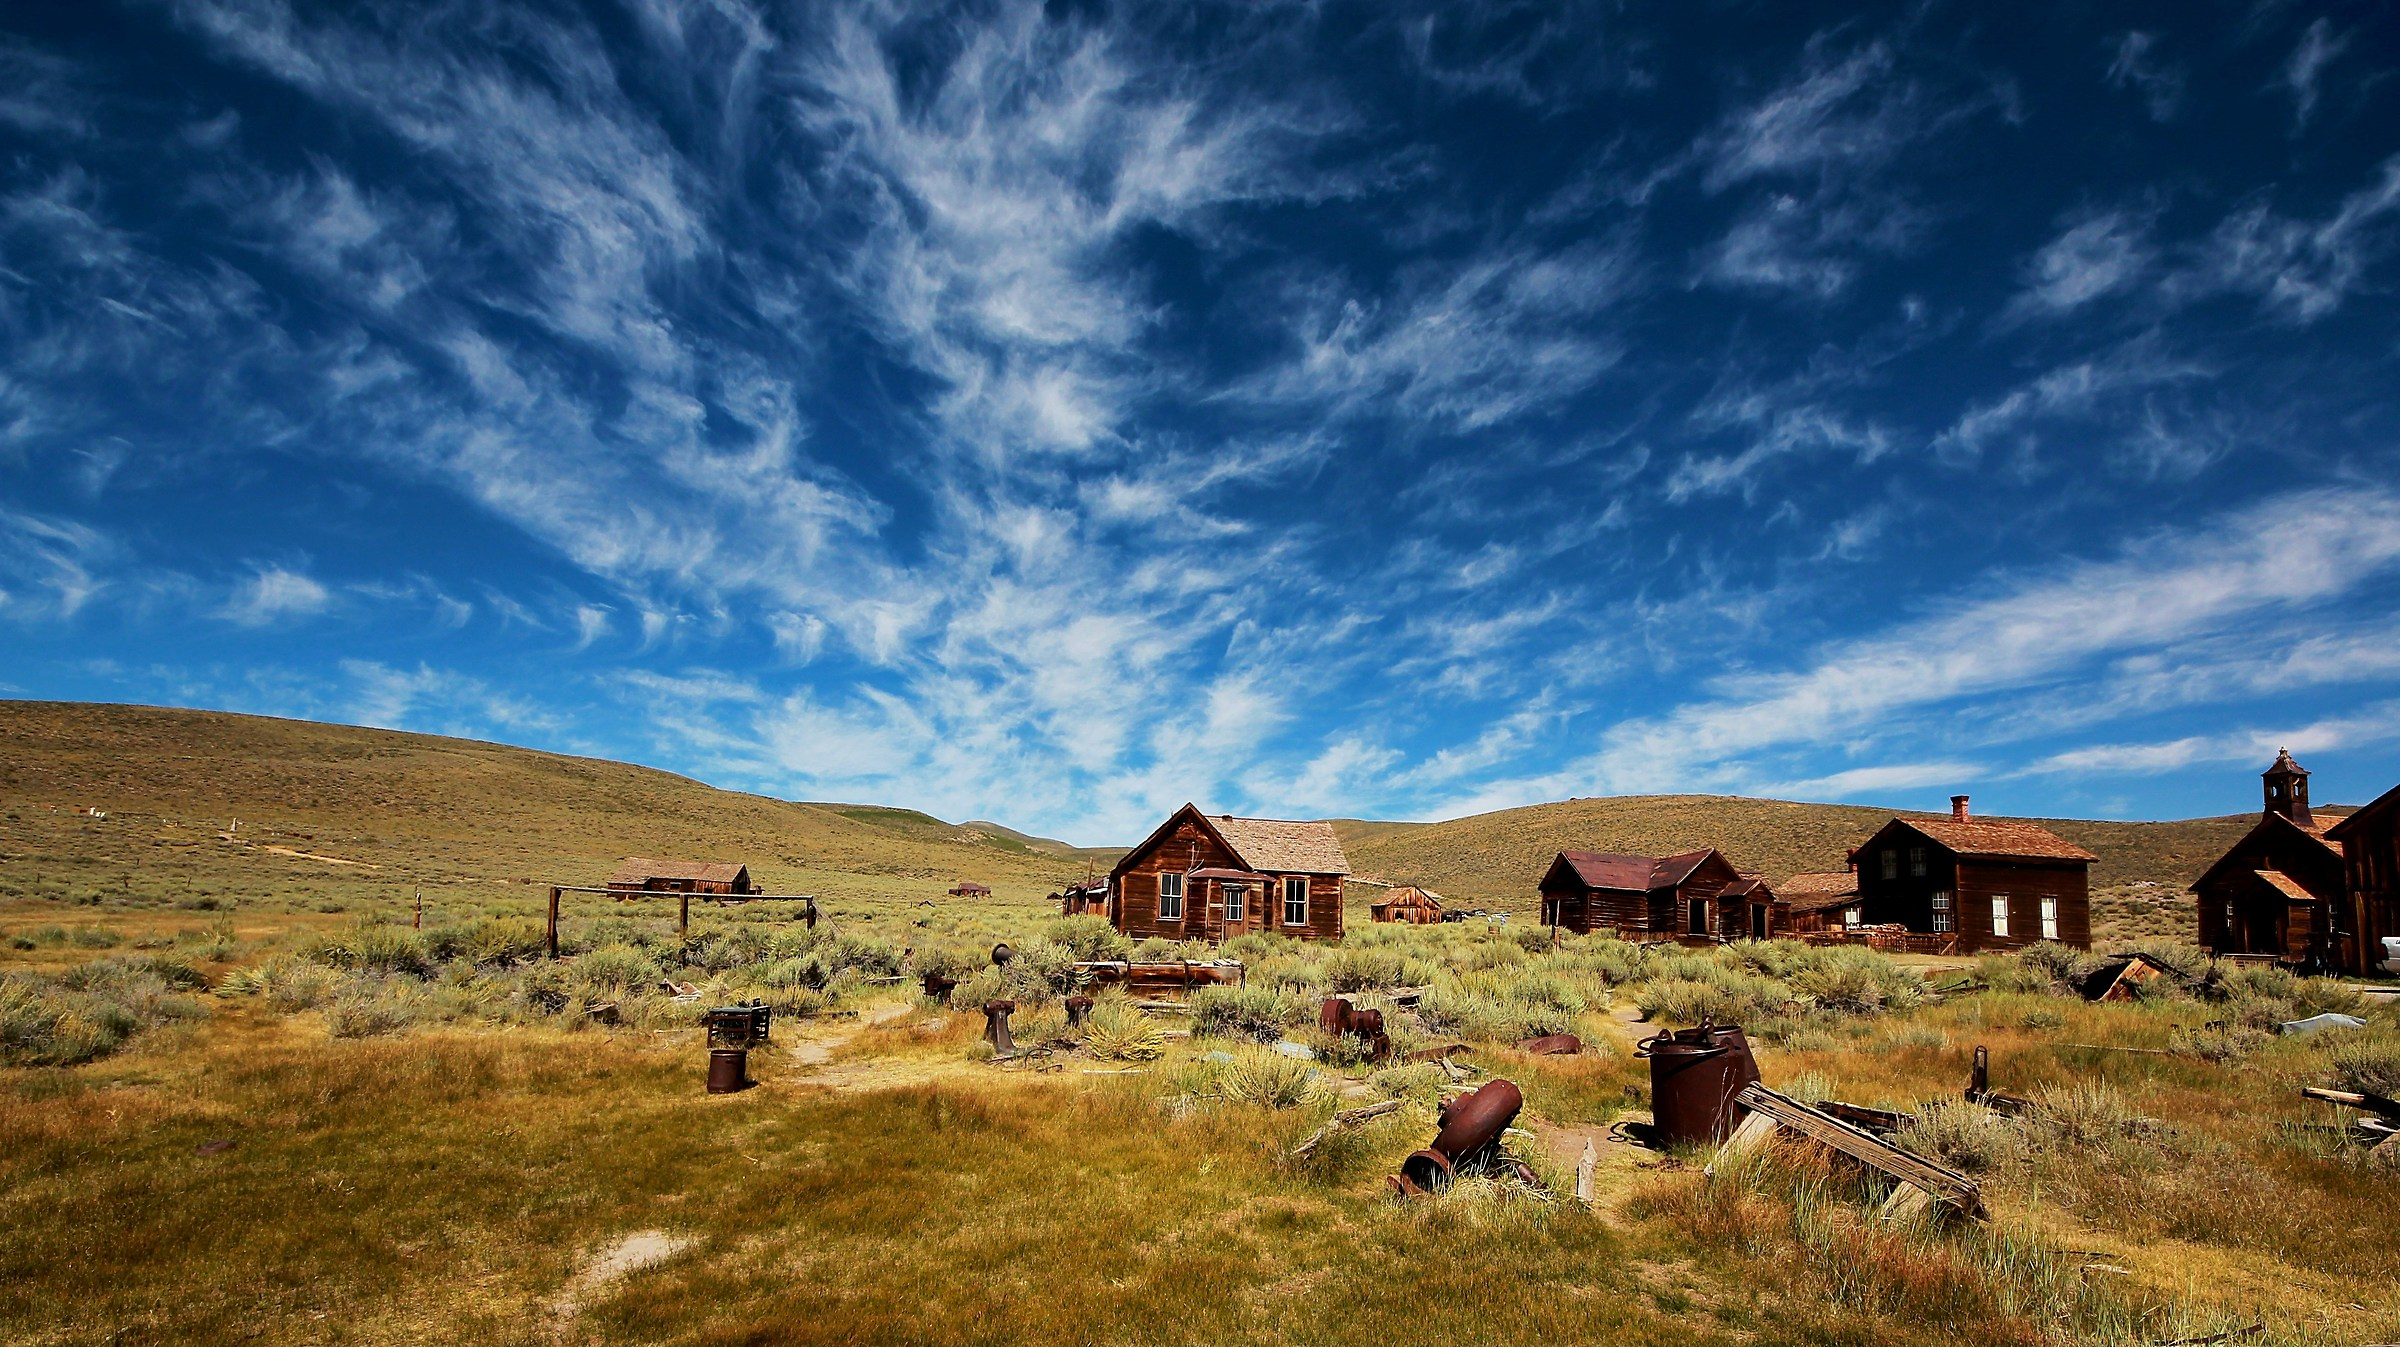 Bodie Ghost town...